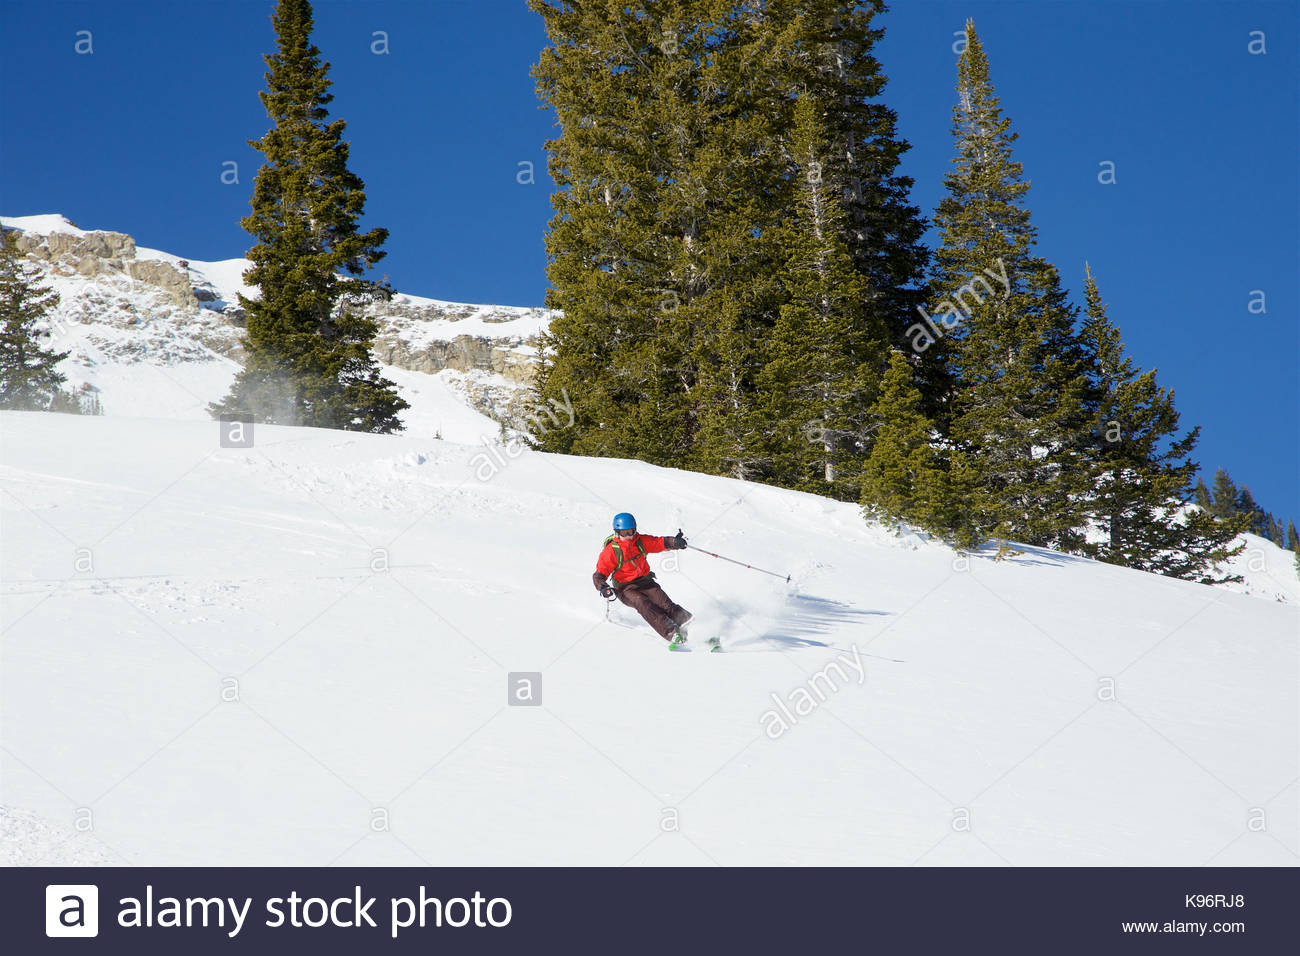 A teen boy skiing fresh powder on a sunny day after a storm. Stock Photo